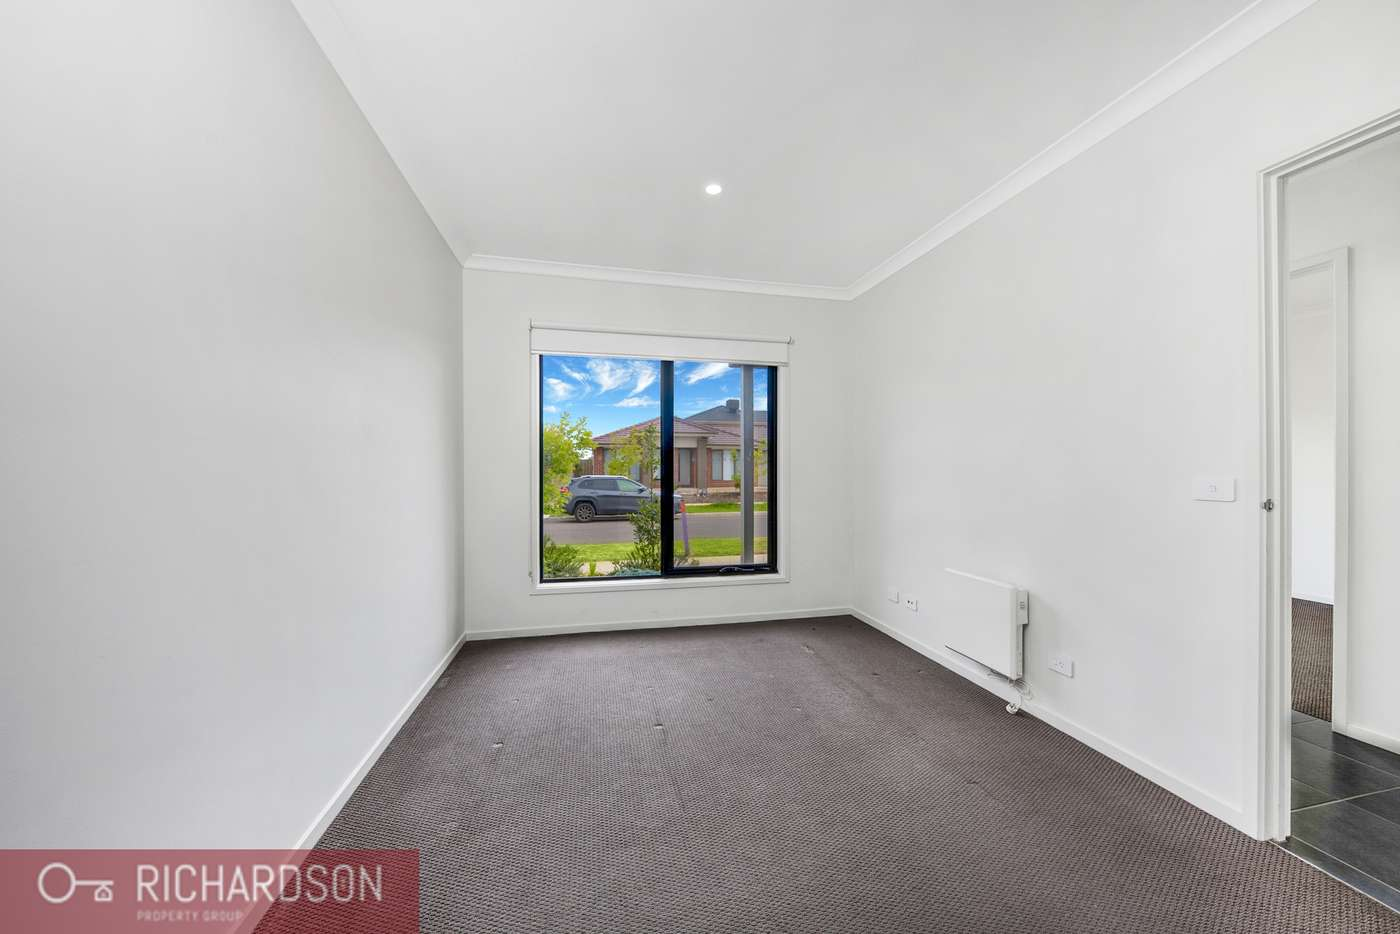 Seventh view of Homely house listing, 7 Vacca Street, Wyndham Vale VIC 3024